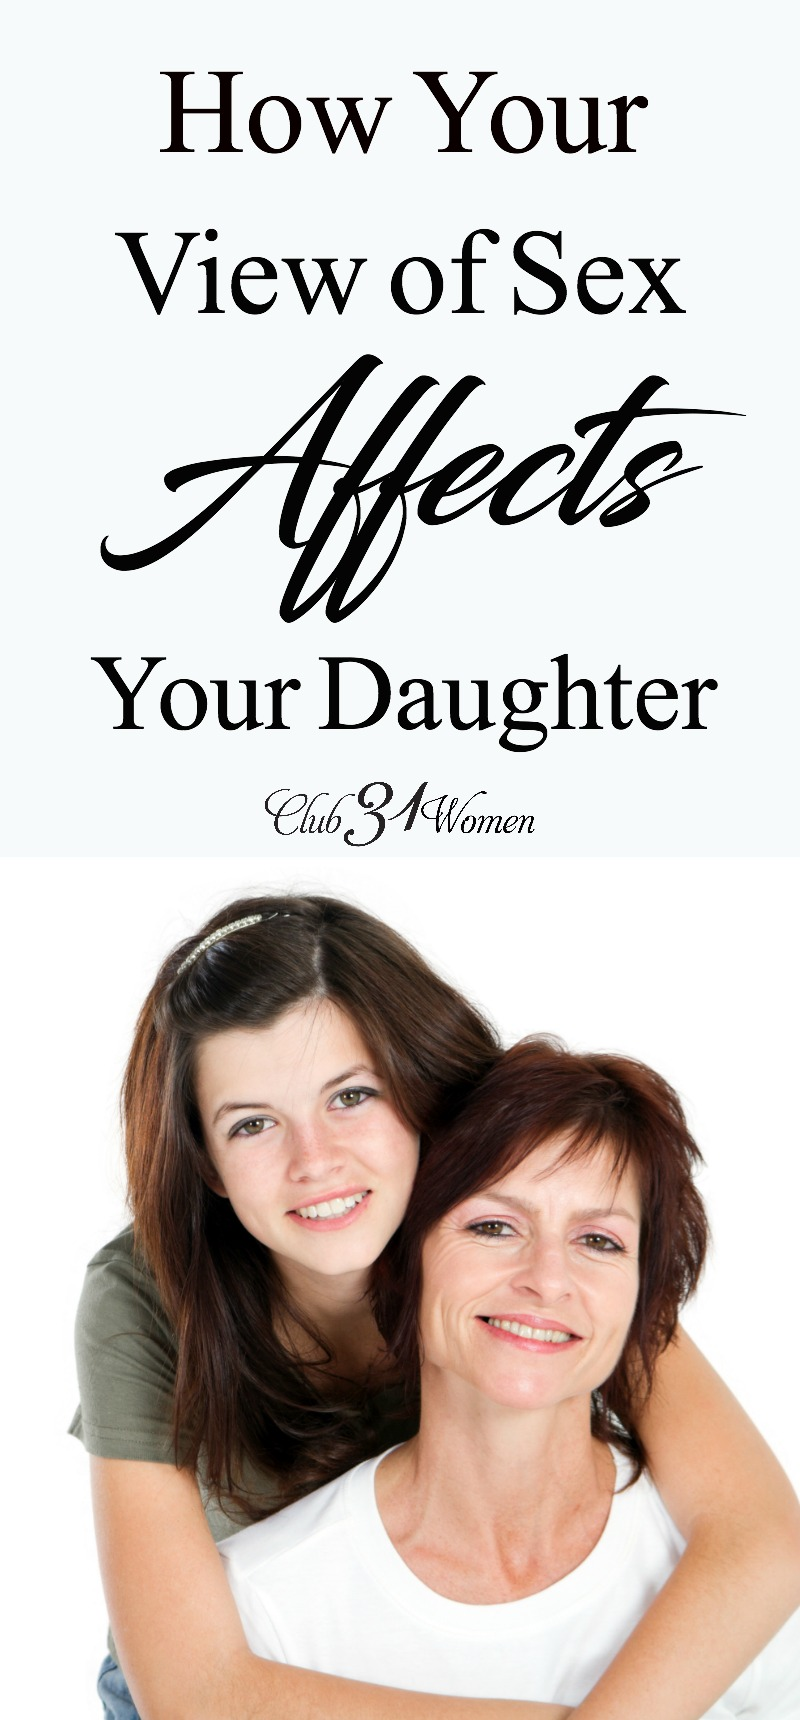 Have you considered your own view of sex and it could affect your marriage? Or how it has a profound impact on your daughter's view? via @Club31Women